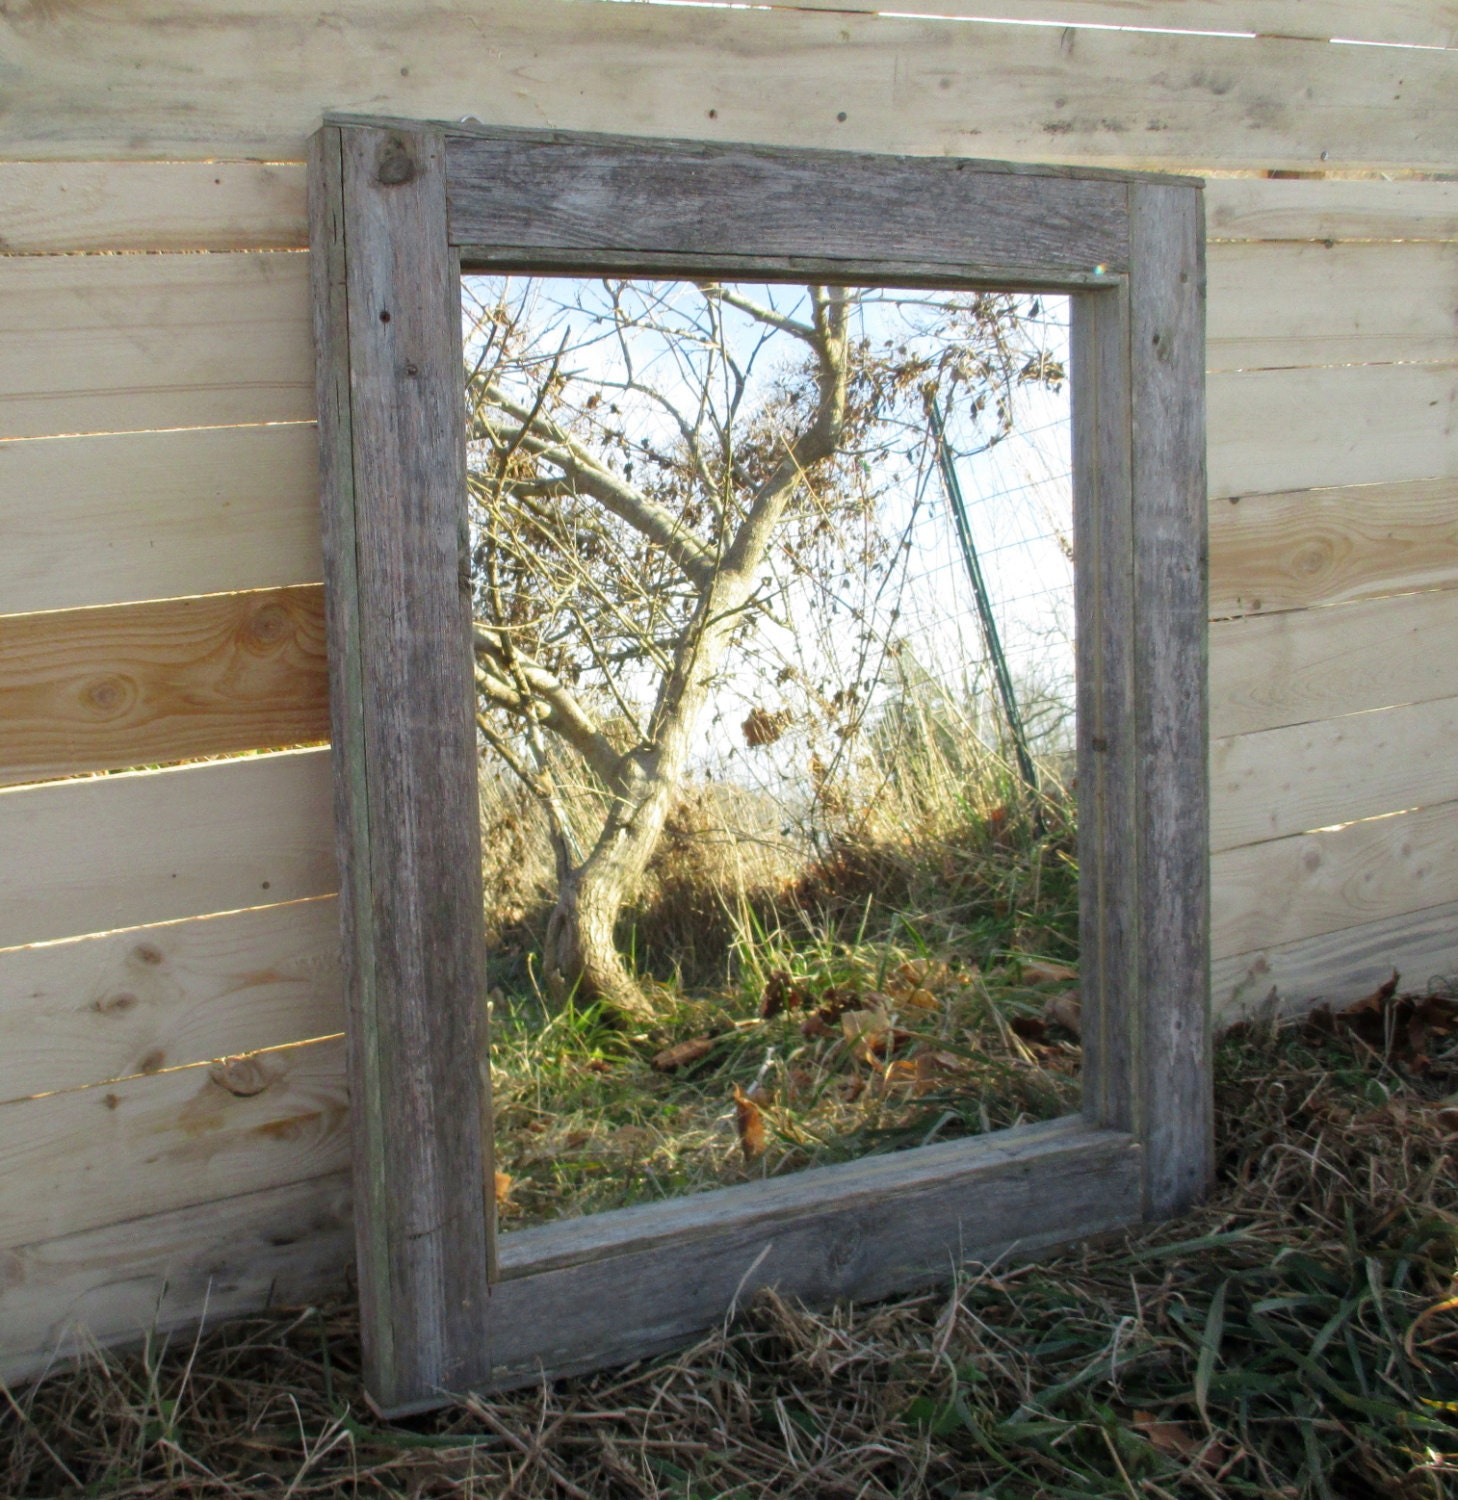 Reclaimed Wood Mirror - Rustic Lodge Decor - Bathroom Mirrors - Reclaimed Wood Decor Etsy